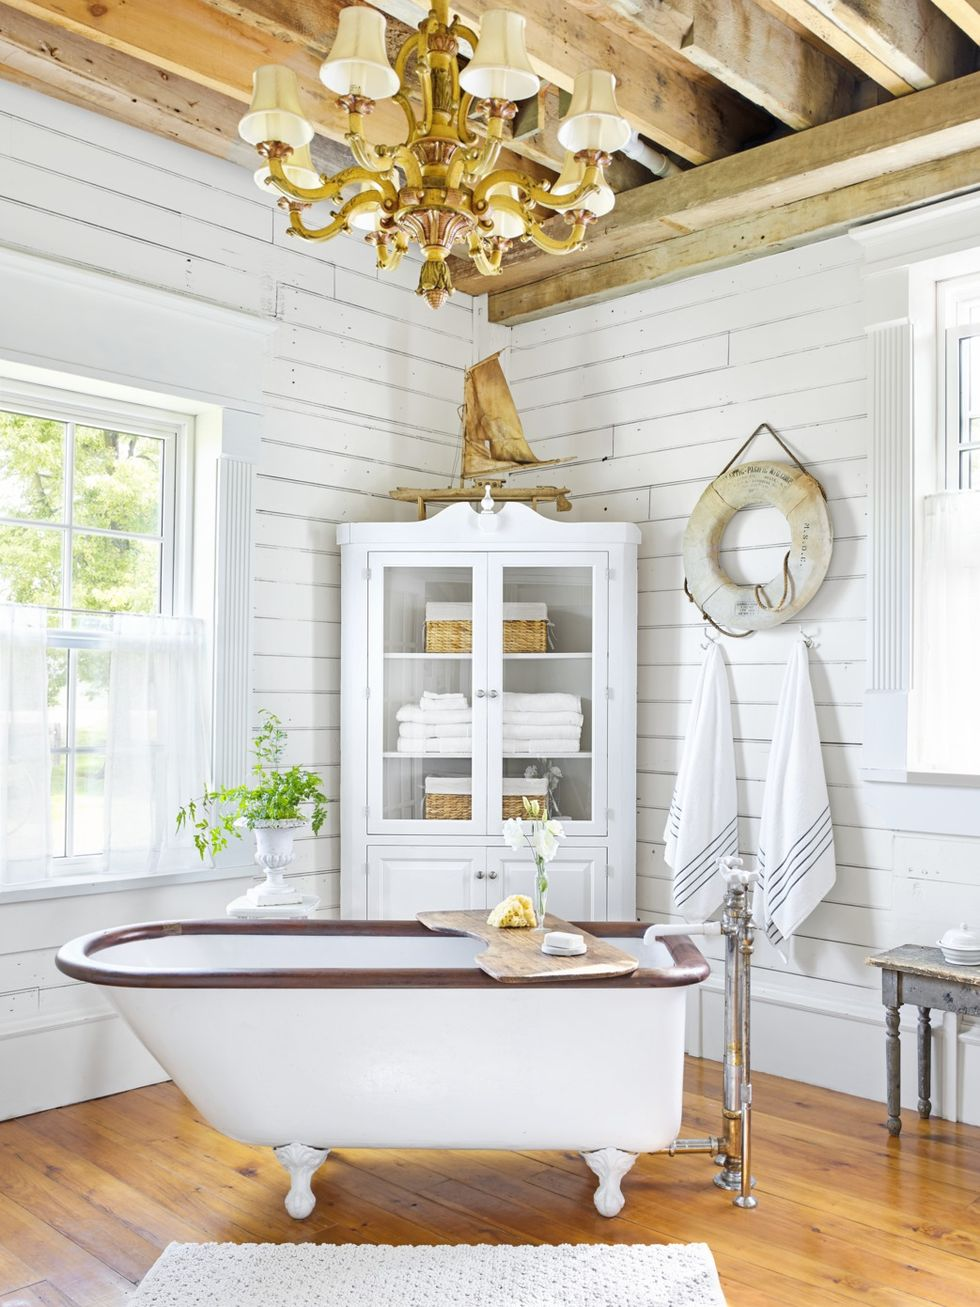 Eight Arm Chandelier in white bathroom with wooden floors and white storage cabinet and exposed beams